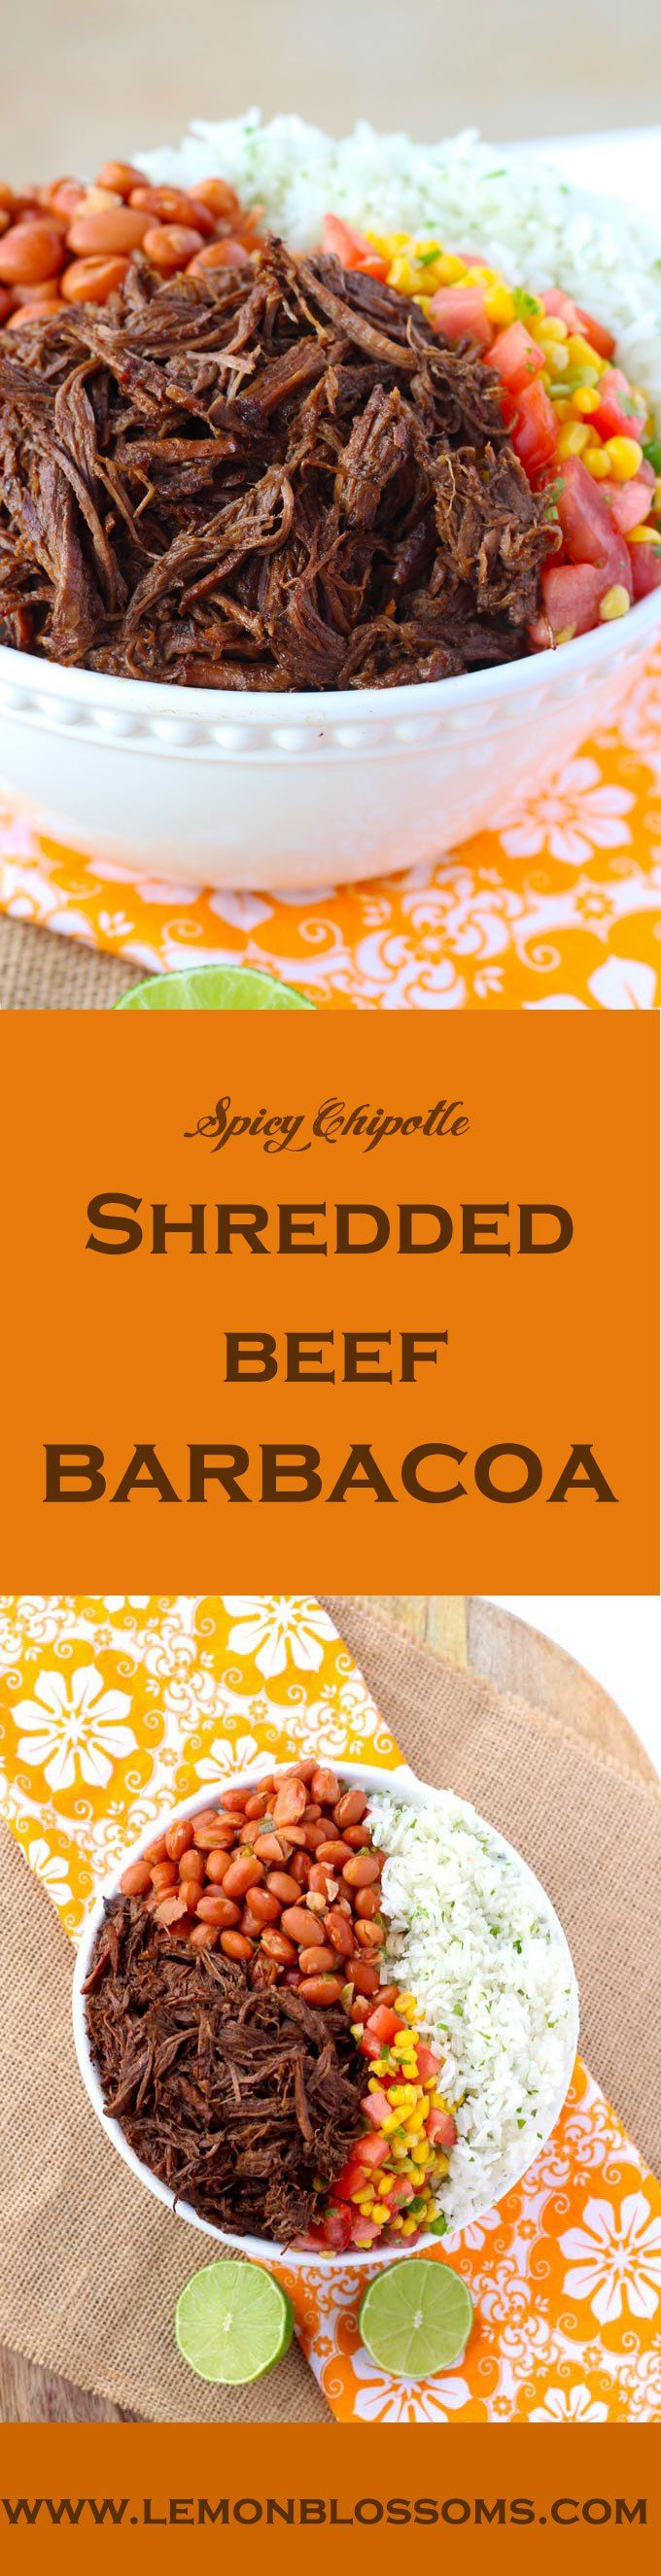 Slow braised until tender, spicy chipotle shredded beef barbacoa is delicious and perfect for burritos, burrito bowls and Tex-Mex salads. #copycat #chipotle #shreddedbeef #barbacoa #copycatrecipe